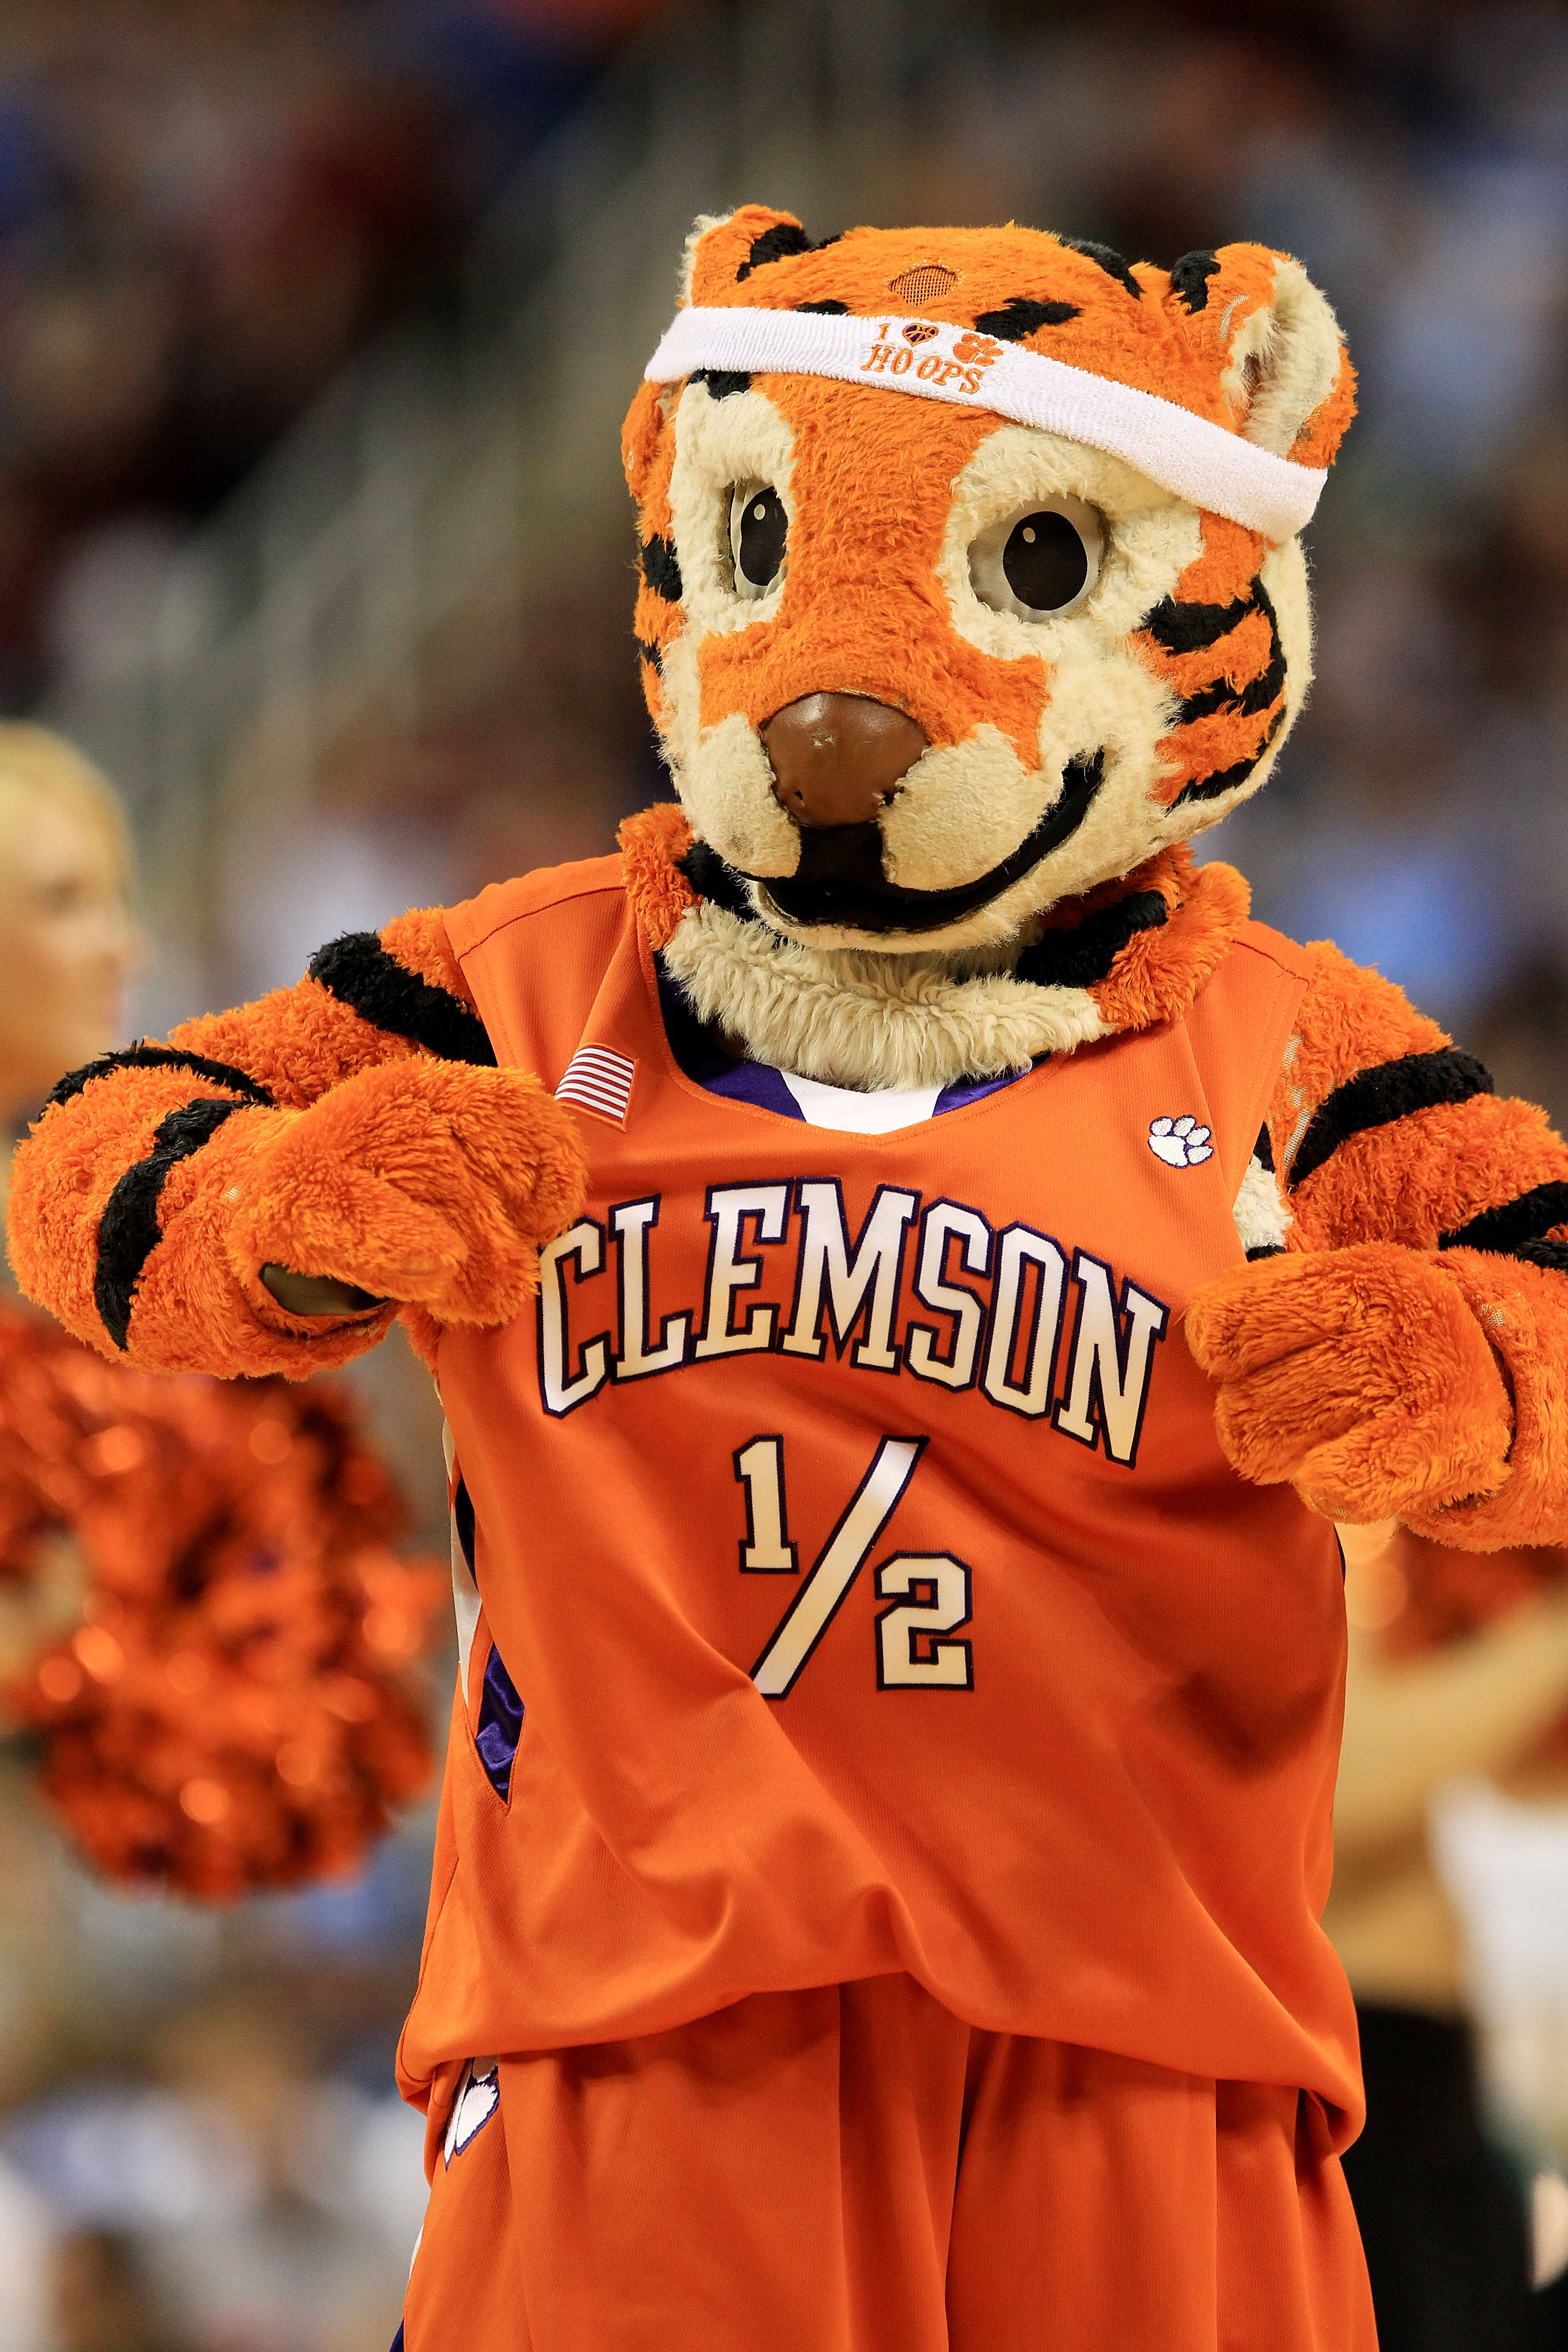 GREENSBORO, NC - MARCH 12:  The Clemson Tigers mascot performs during the second half against the North Carolina Tar Heels in the semifinals of the 2011 ACC men's basketball tournament at the Greensboro Coliseum on March 12, 2011 in Greensboro, North Caro